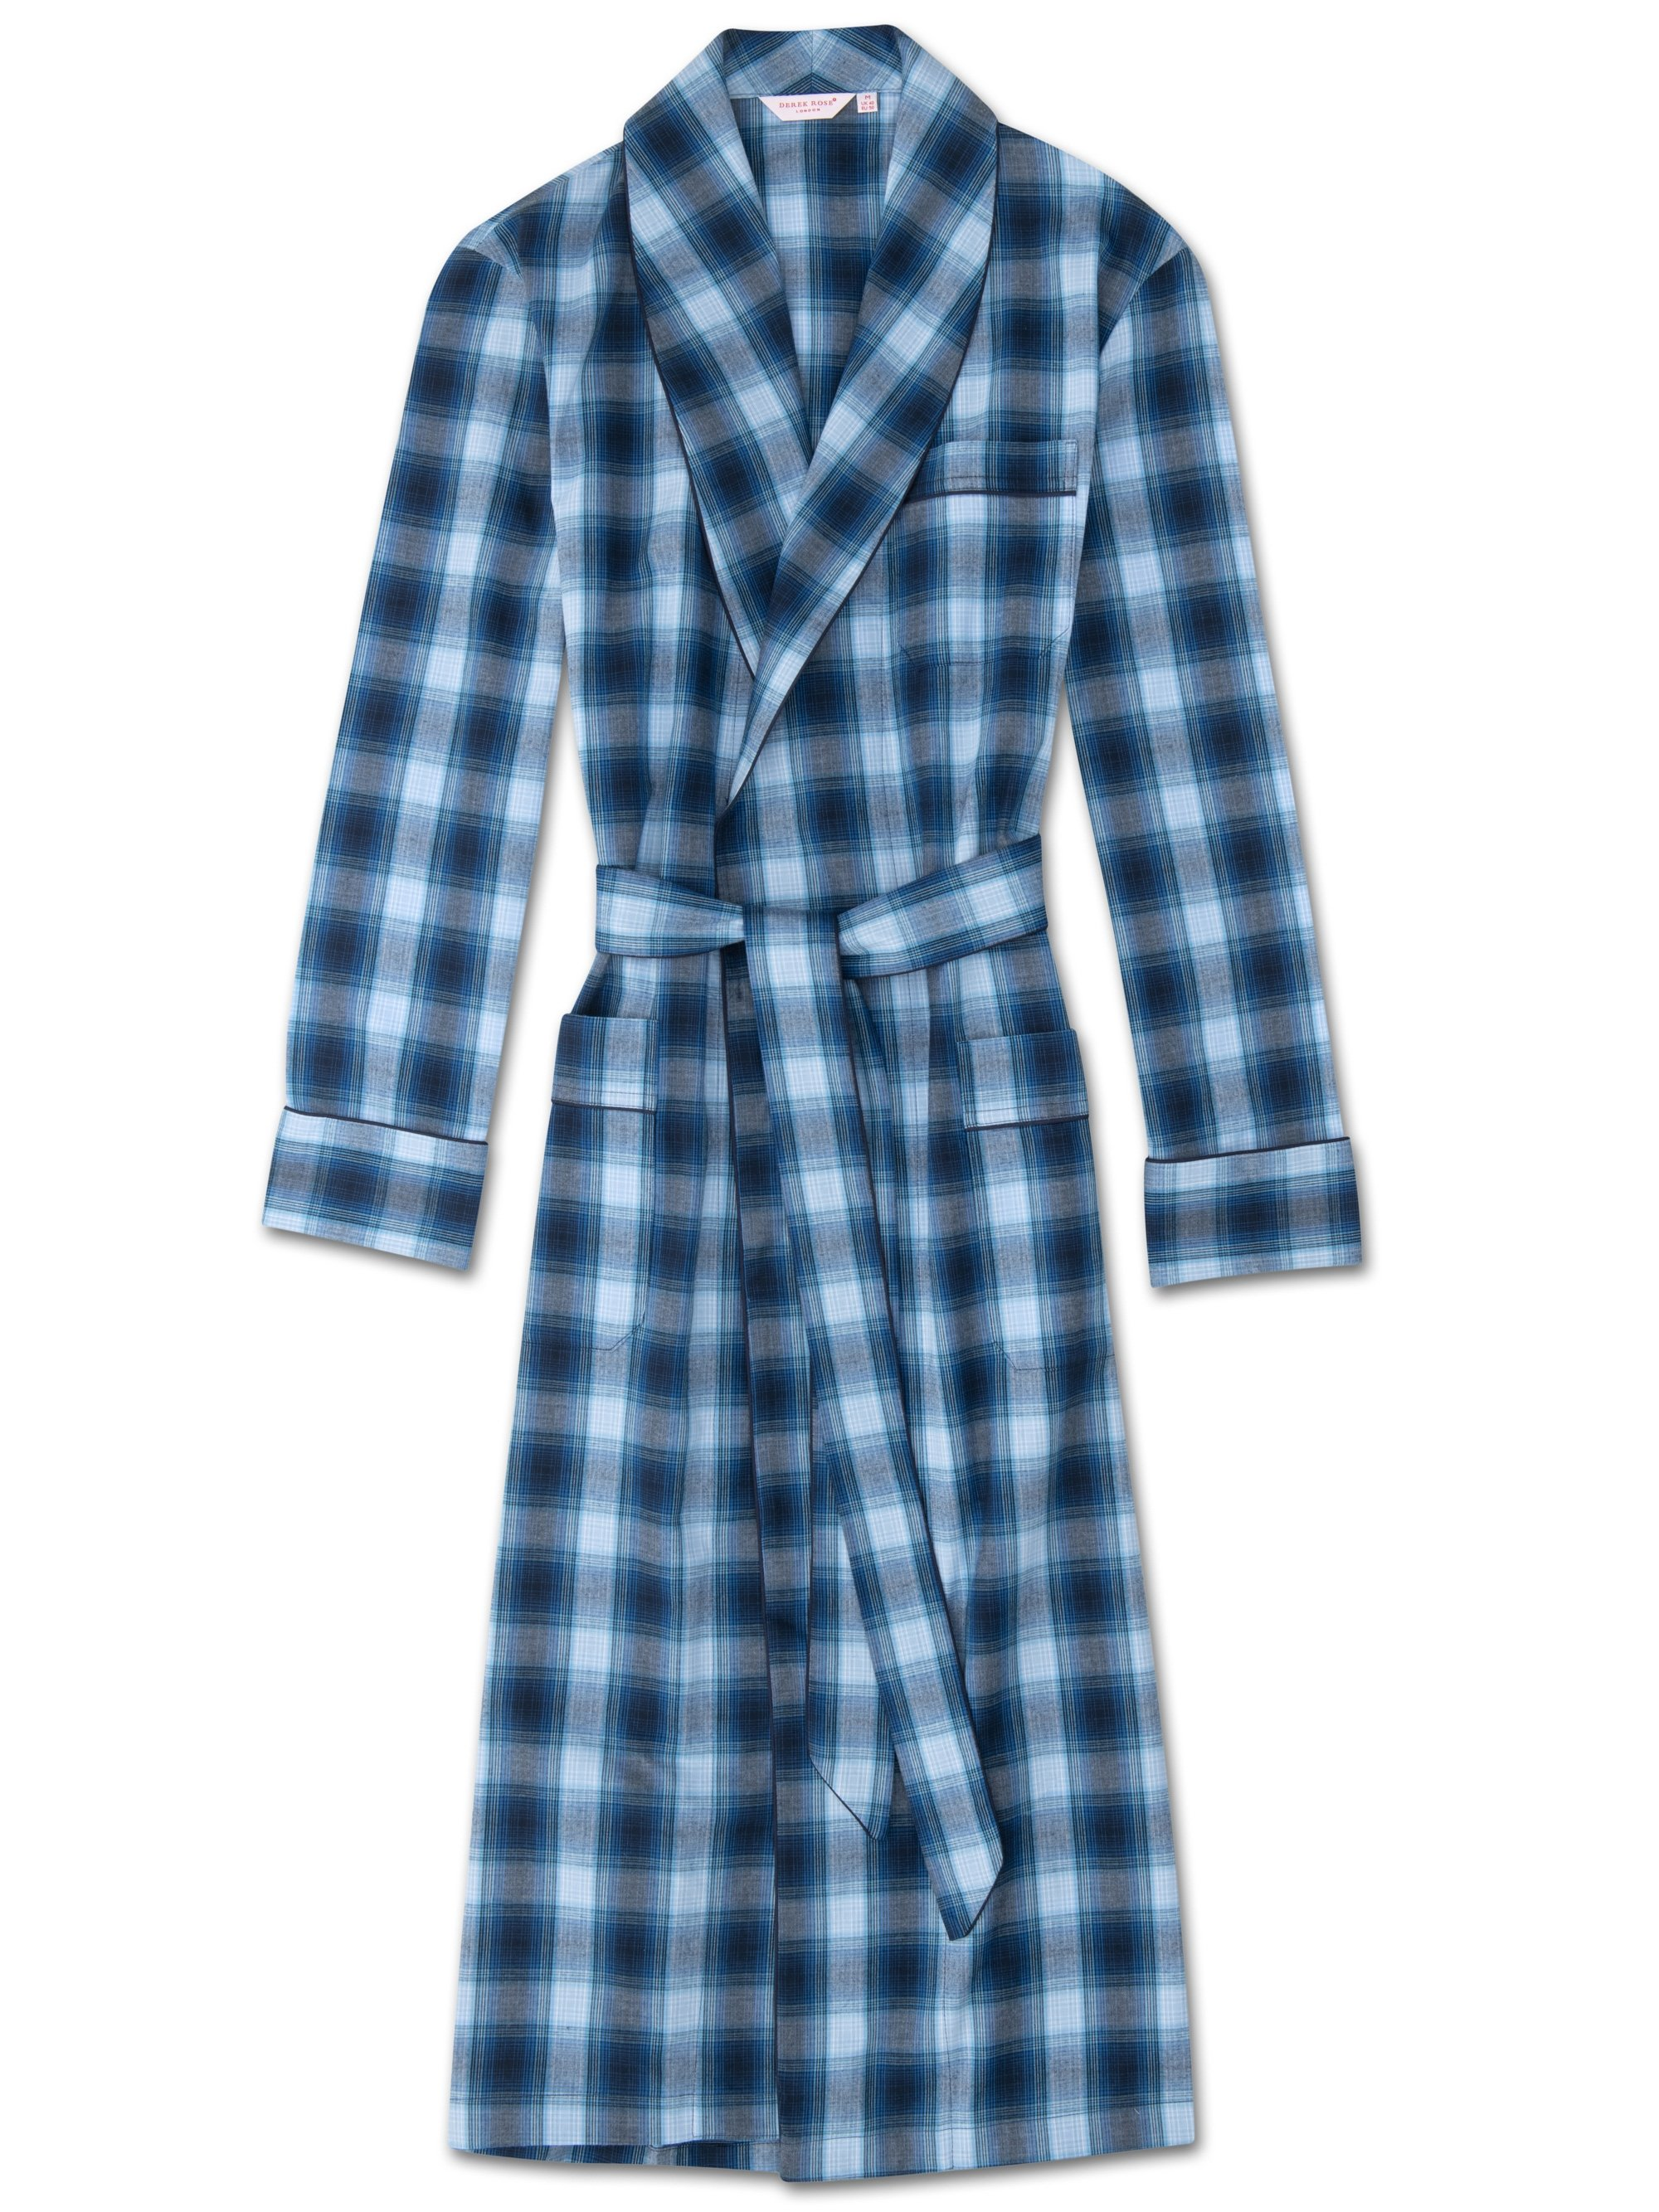 4fa3df243c Men s Piped Dressing Gown Ranga 36 Brushed Cotton Check Blue